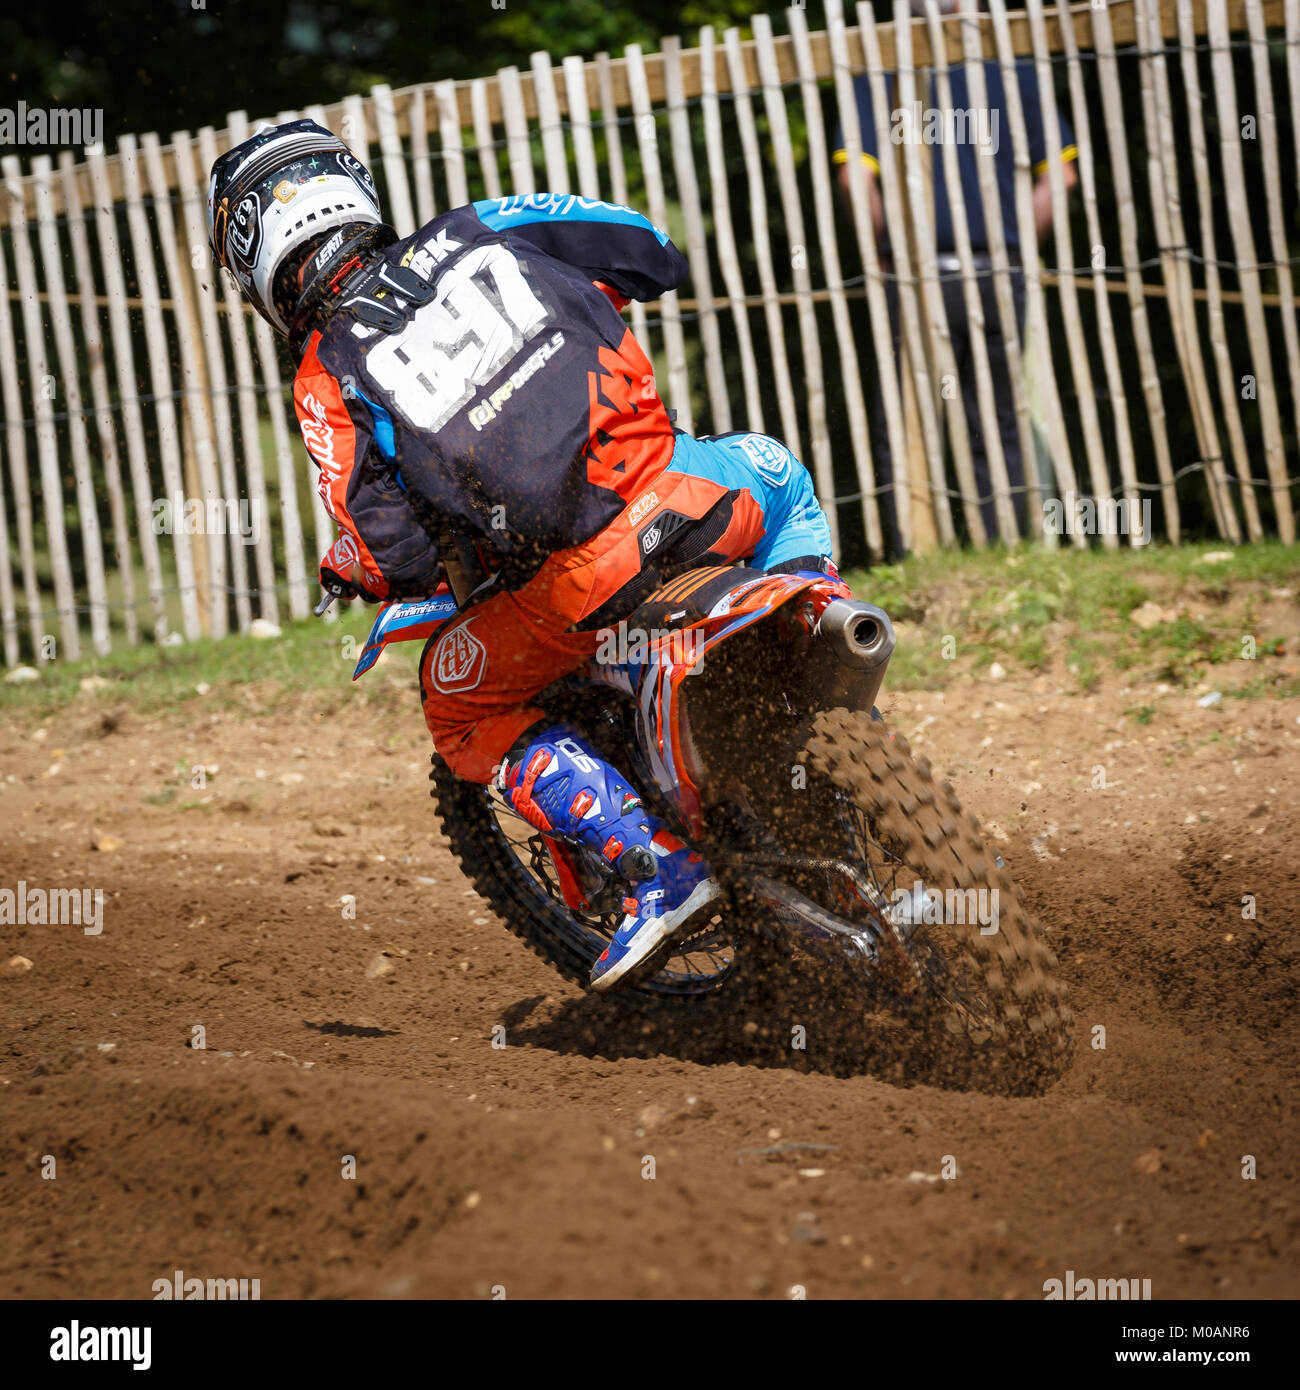 Harry Clark on the Jim Aim KTM 250 at the NGR & ACU Eastern EVO Championships, Cadders Hill, Lyng, Norfolk, - Stock Image